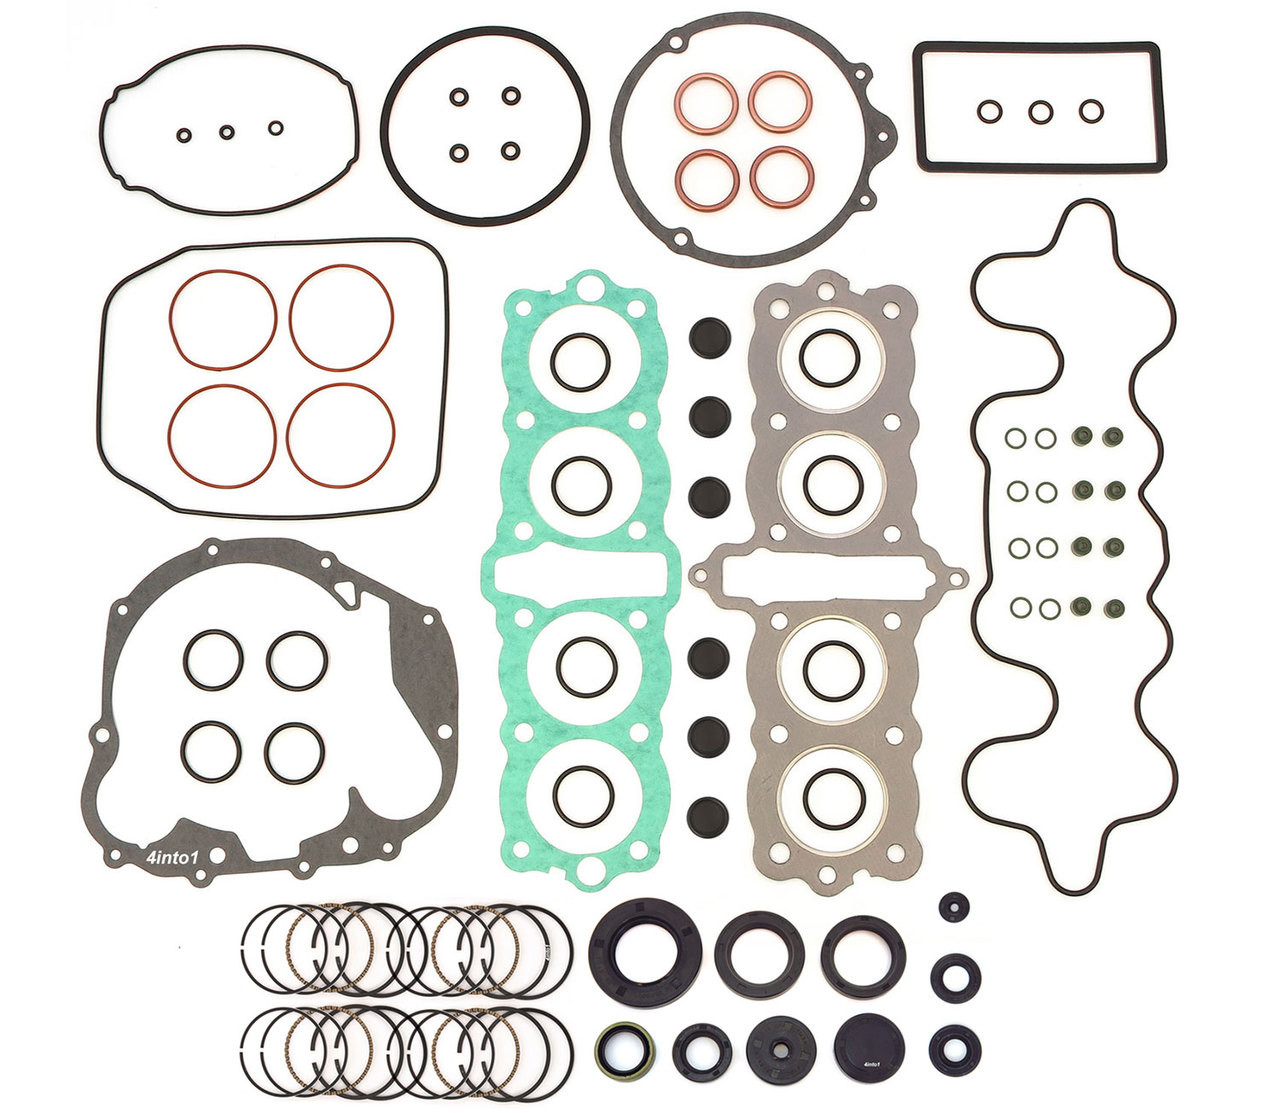 Gold 1971-1973 Honda CB500 Four O-Ring Chain and Sprocket Kit